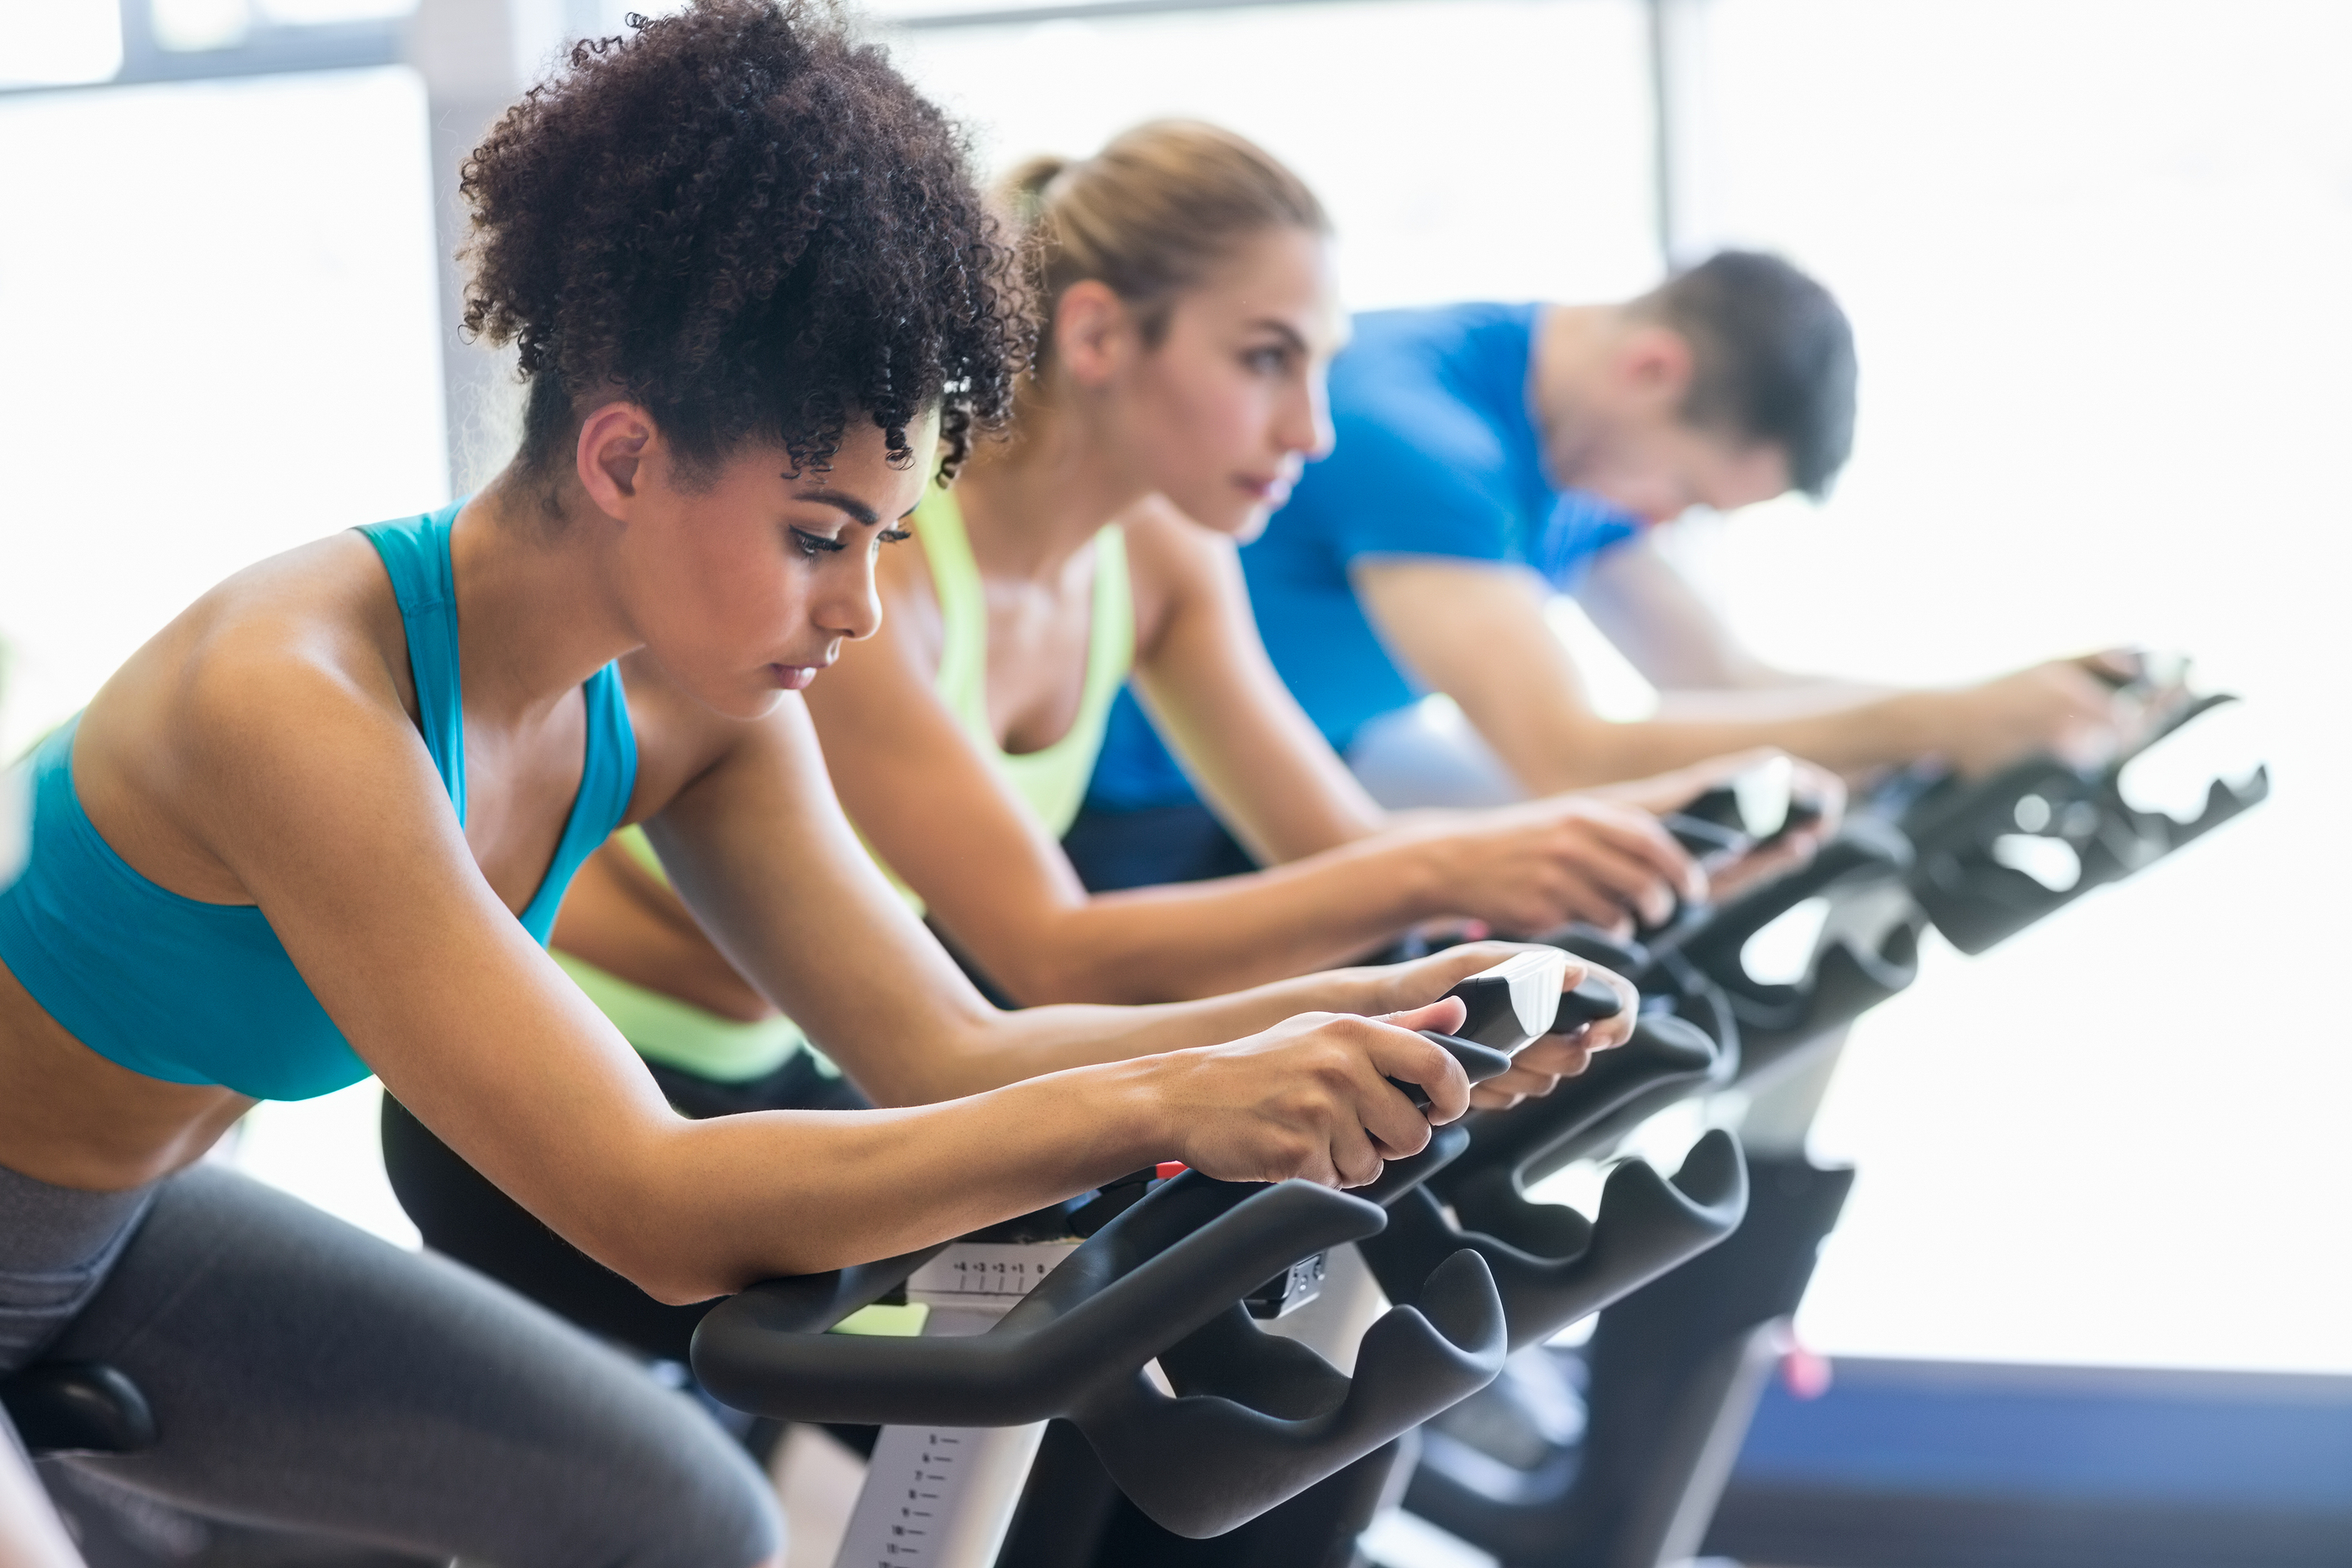 Folks doing interval training in a spin class